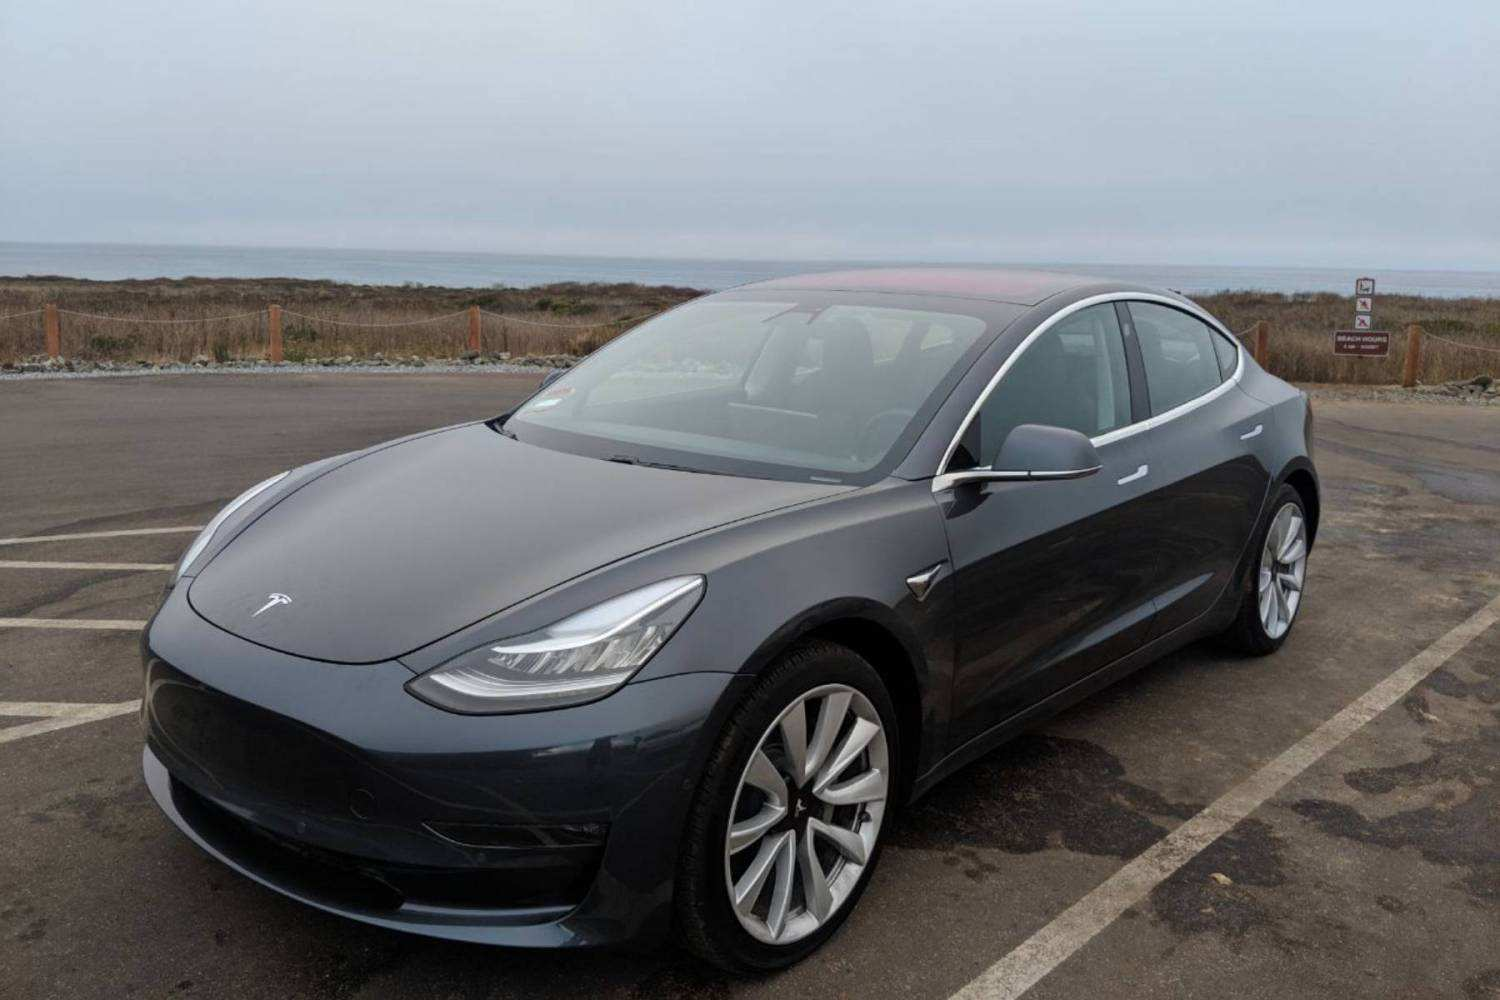 88 All New 2019 Tesla Model 3 Concept